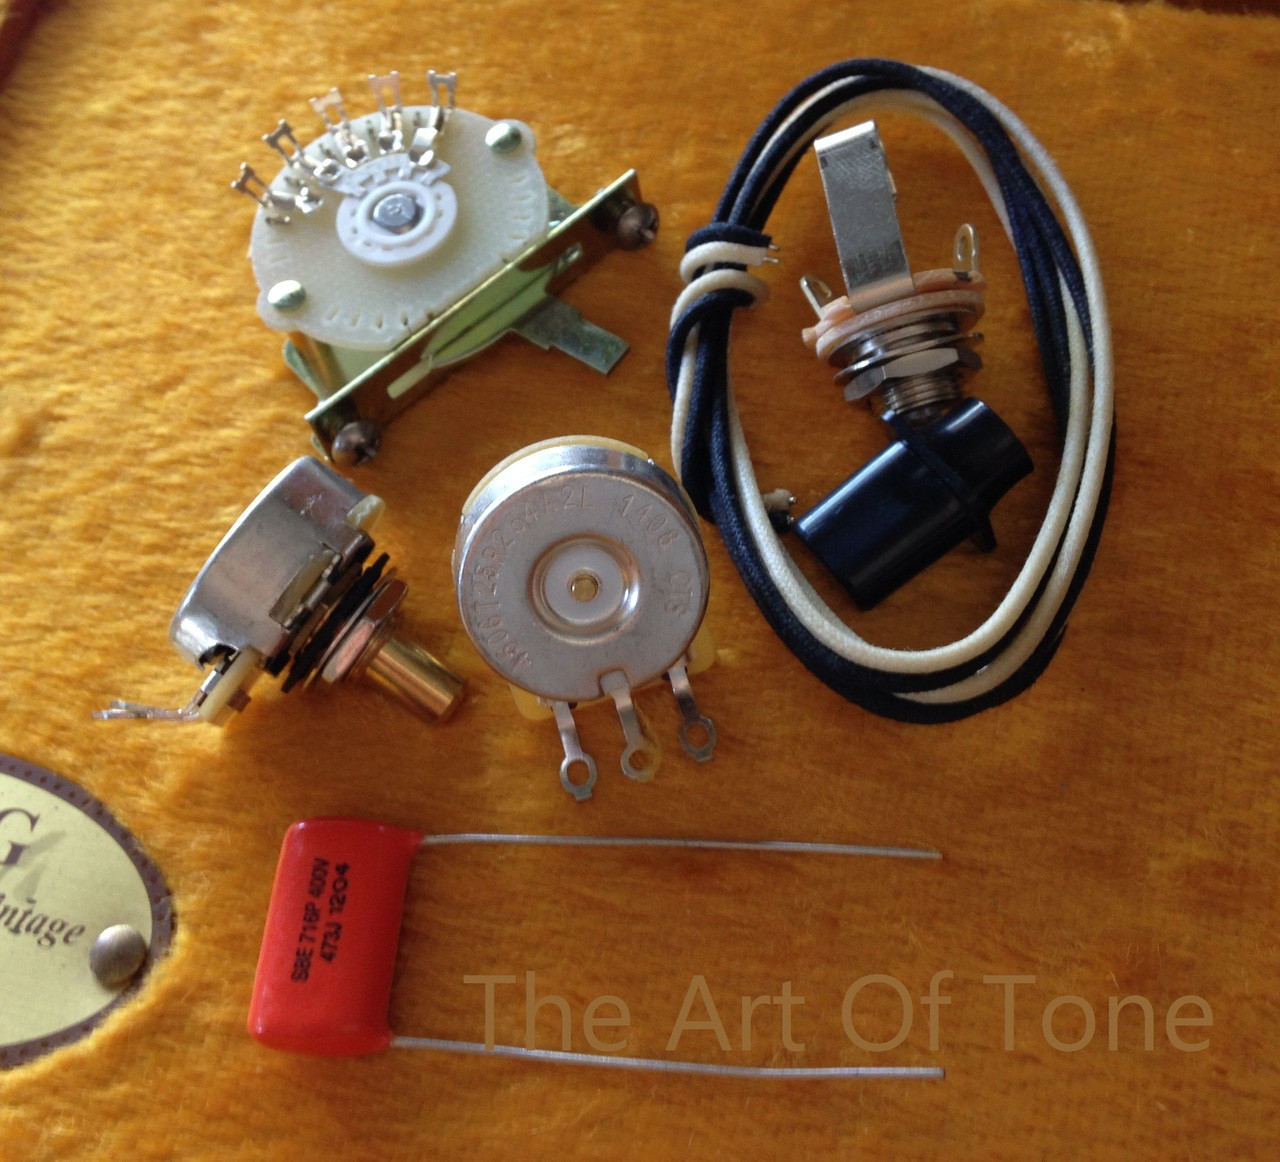 hight resolution of basic wiring kit for telecaster guitarsdeluxe tele 4 way wiring kit telecaster cts 450g pots